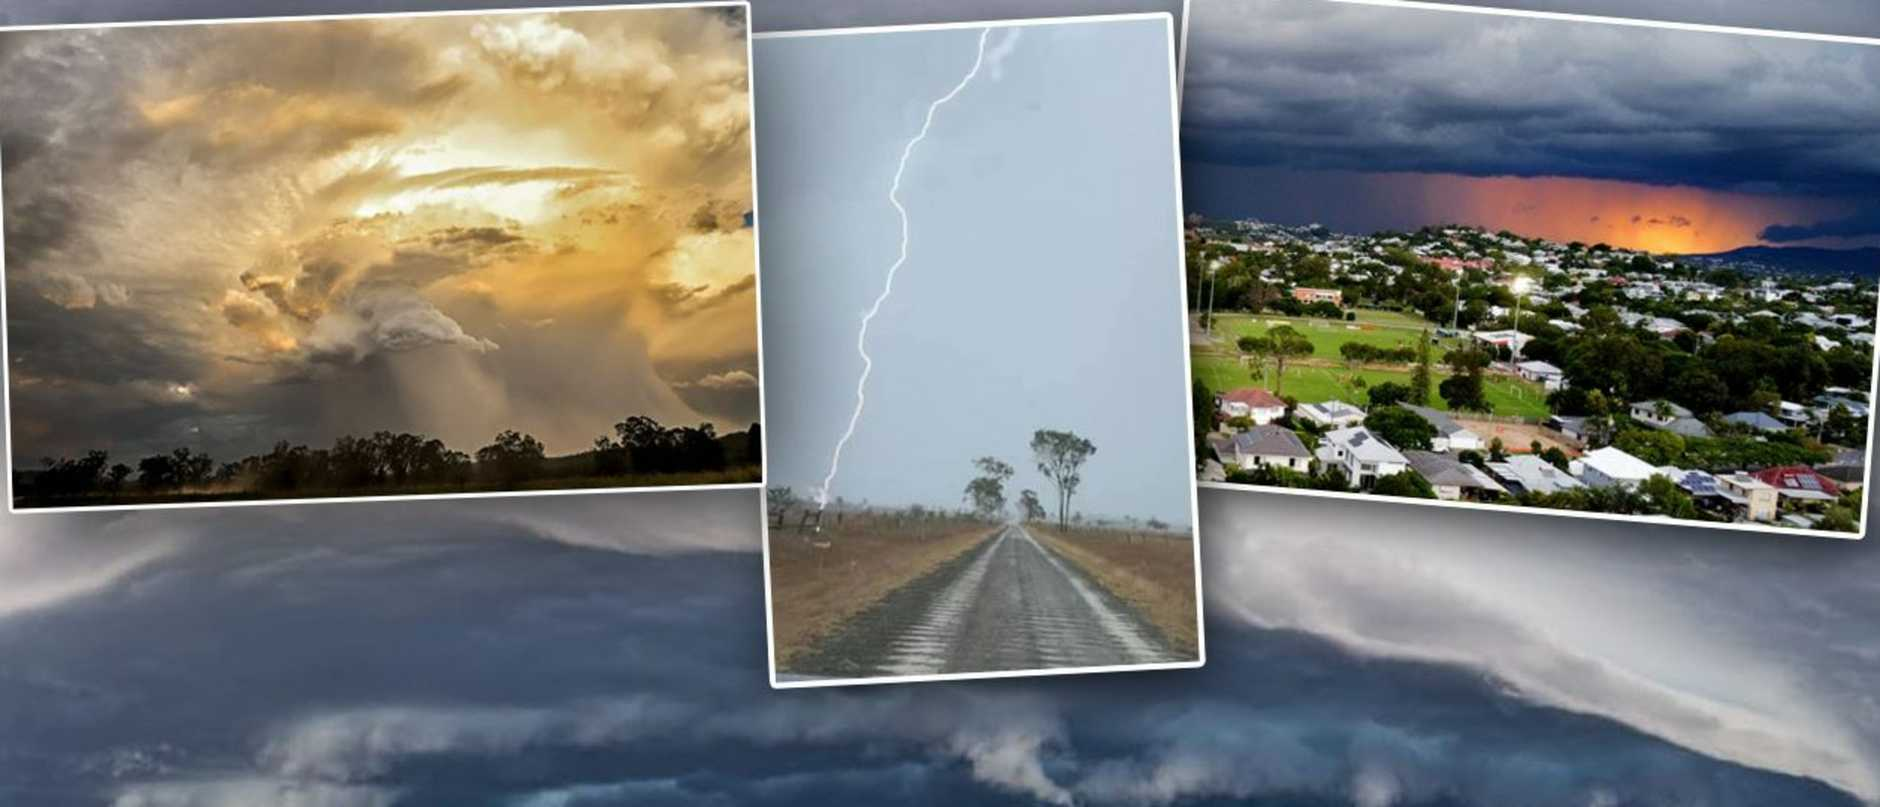 In pictures: Monster storm wreaks havoc across southeast Qld